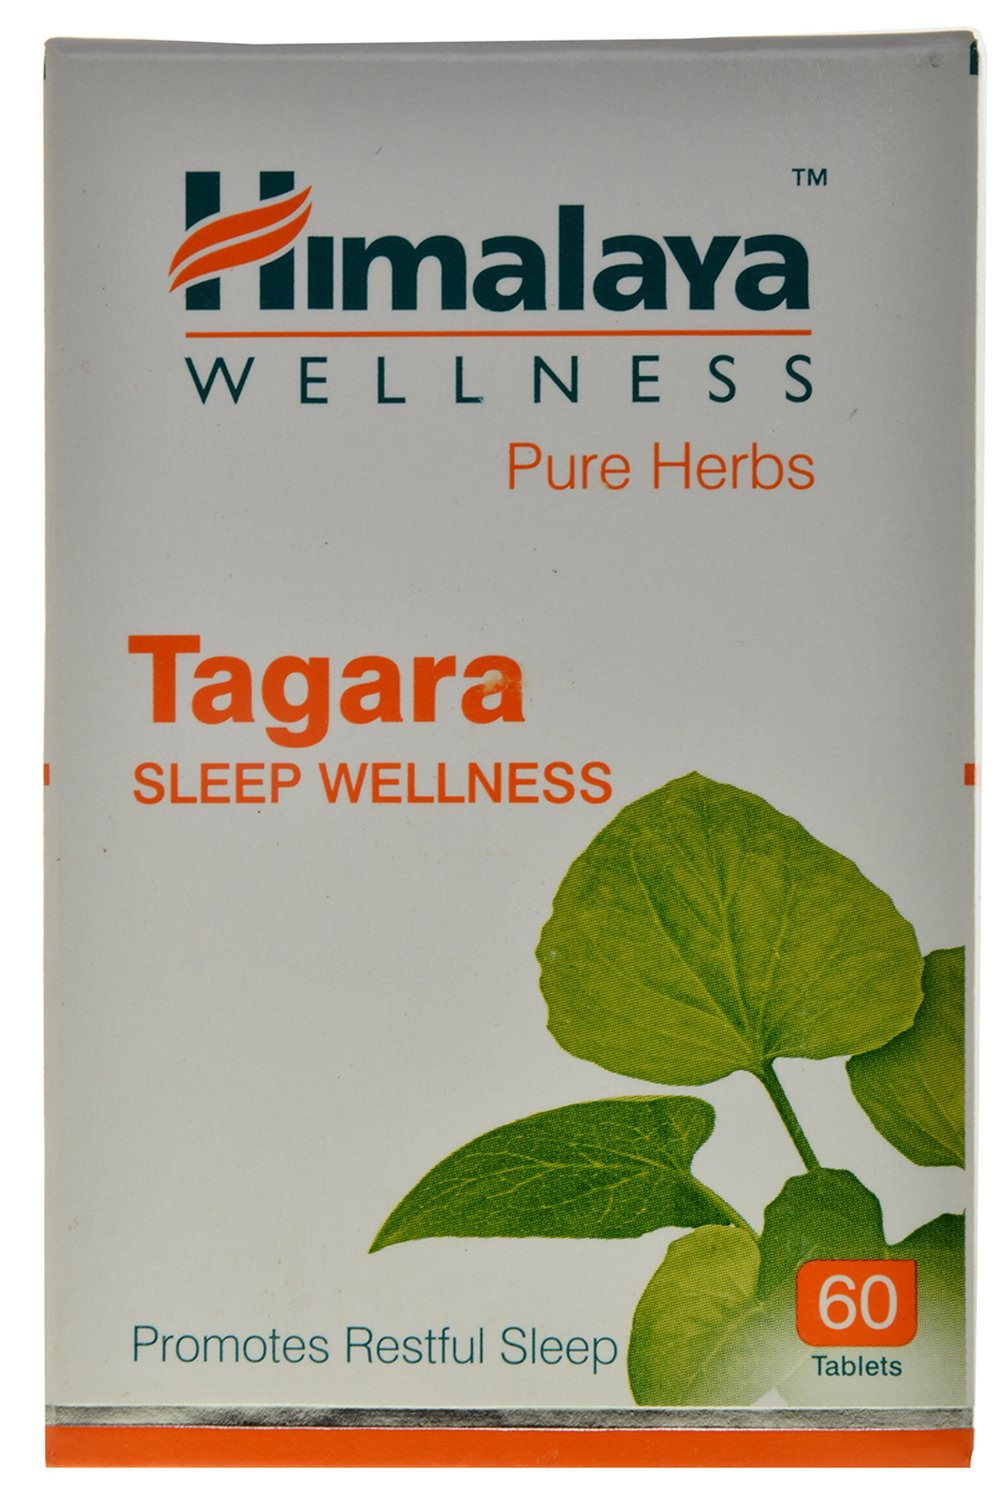 Cheapest amazon herbs - Buy Himalaya Tagara Pure Herbs 60 Tablets Online At Low Prices In India Amazon In